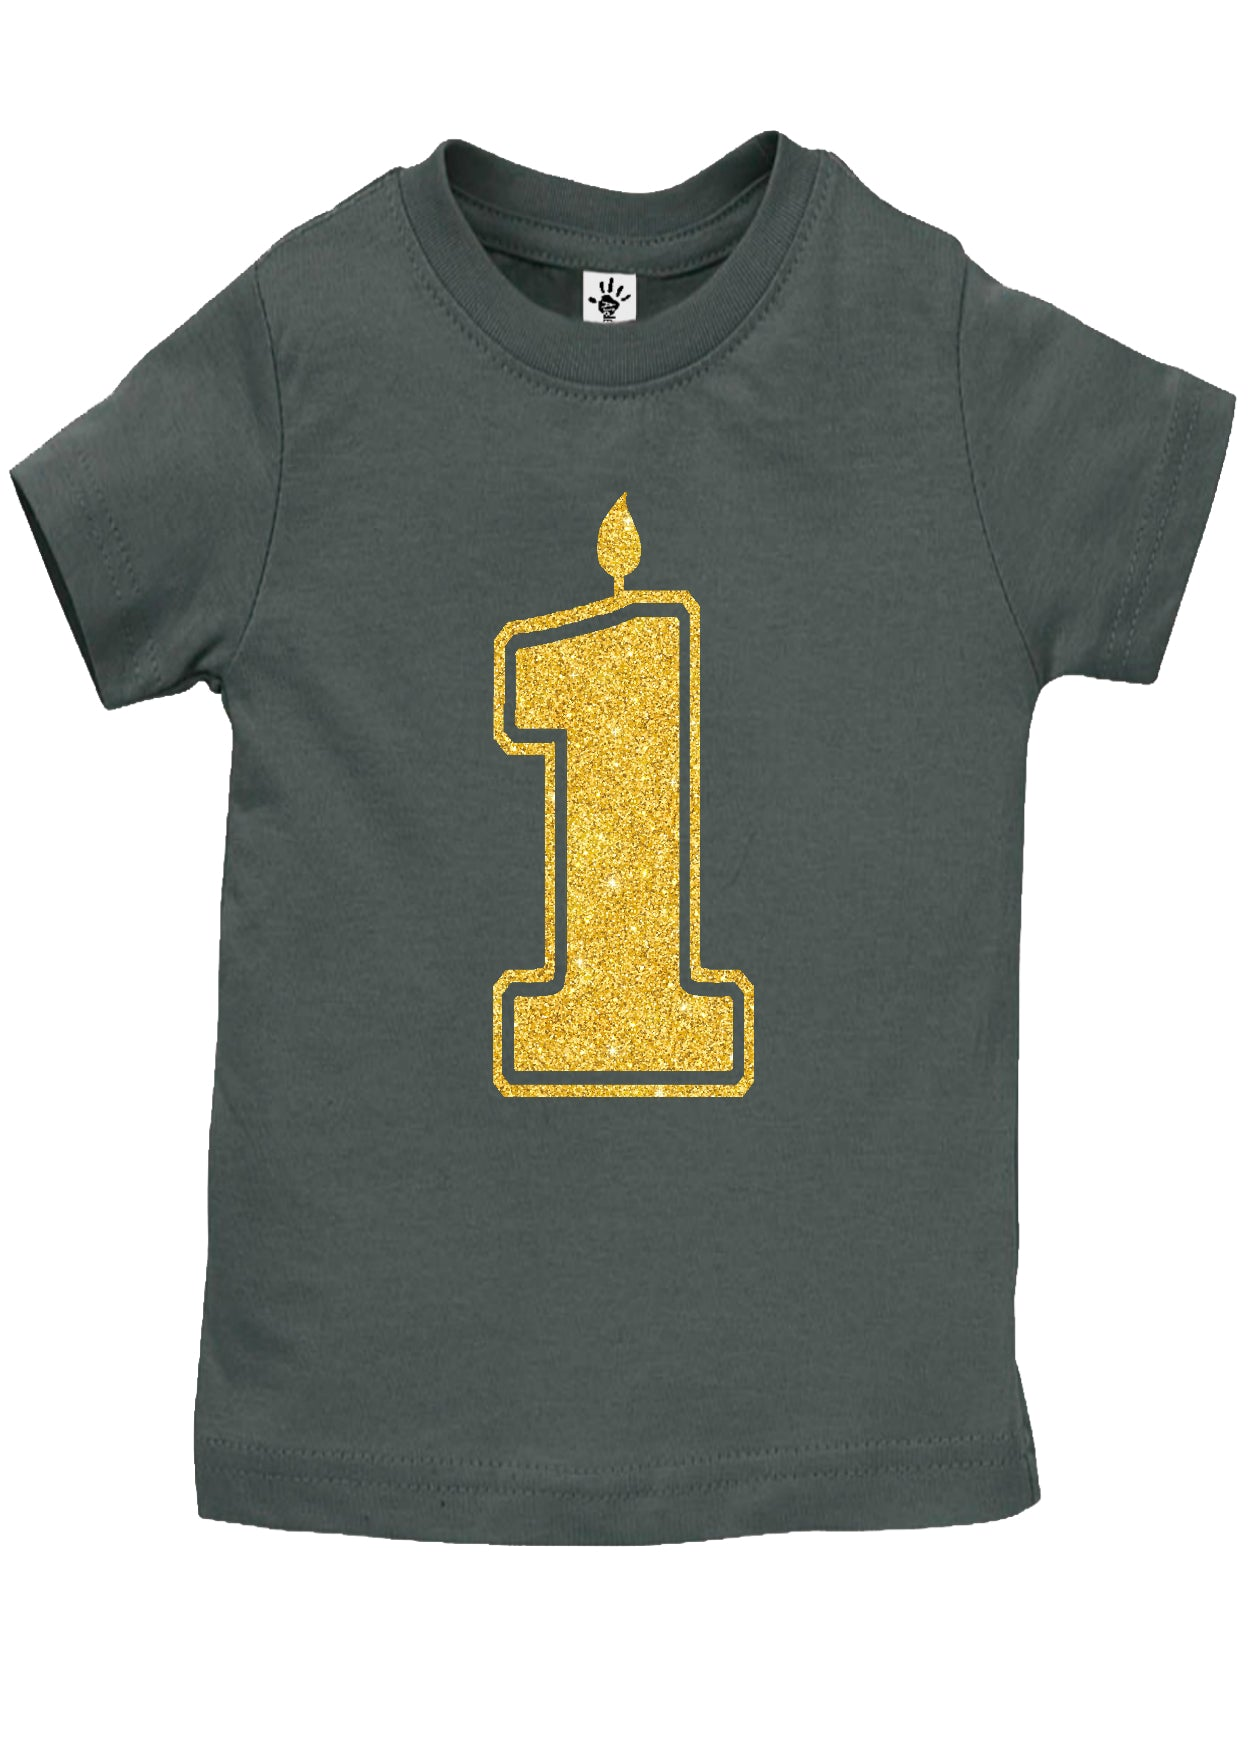 Handmade Baby Boy 1st Birthday Shirts 1 Gold Glitter Flake Baby